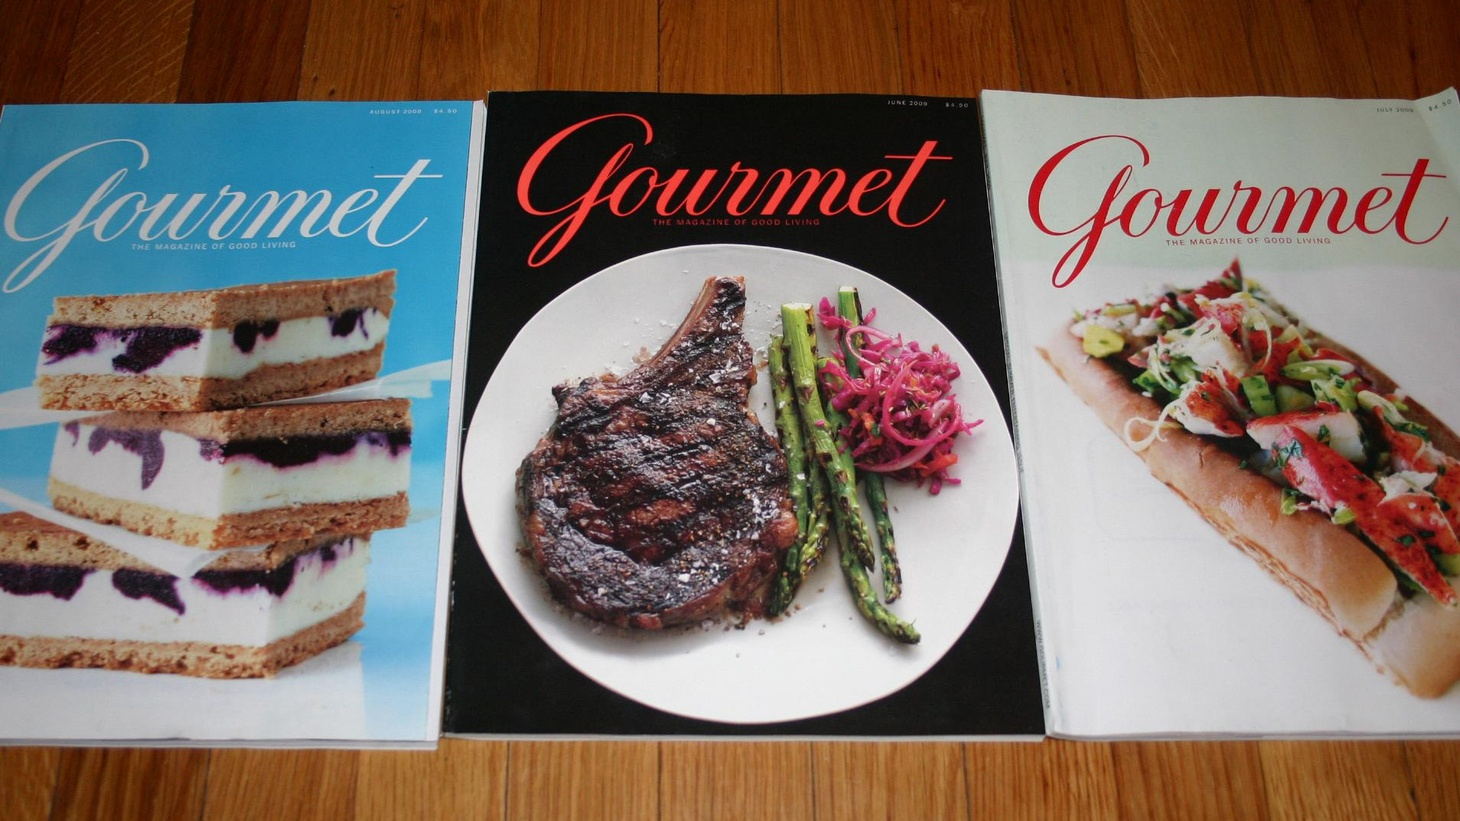 RIP Gourmet Magazine.  Food writers Russ Parsons and Jonathan Gold sort out just what the magazine meant to its readers, and what will take its place.  Plus the outspoken Top Chef non-winner, Stefan Richter stops by.  And the ins and outs of urban farming.